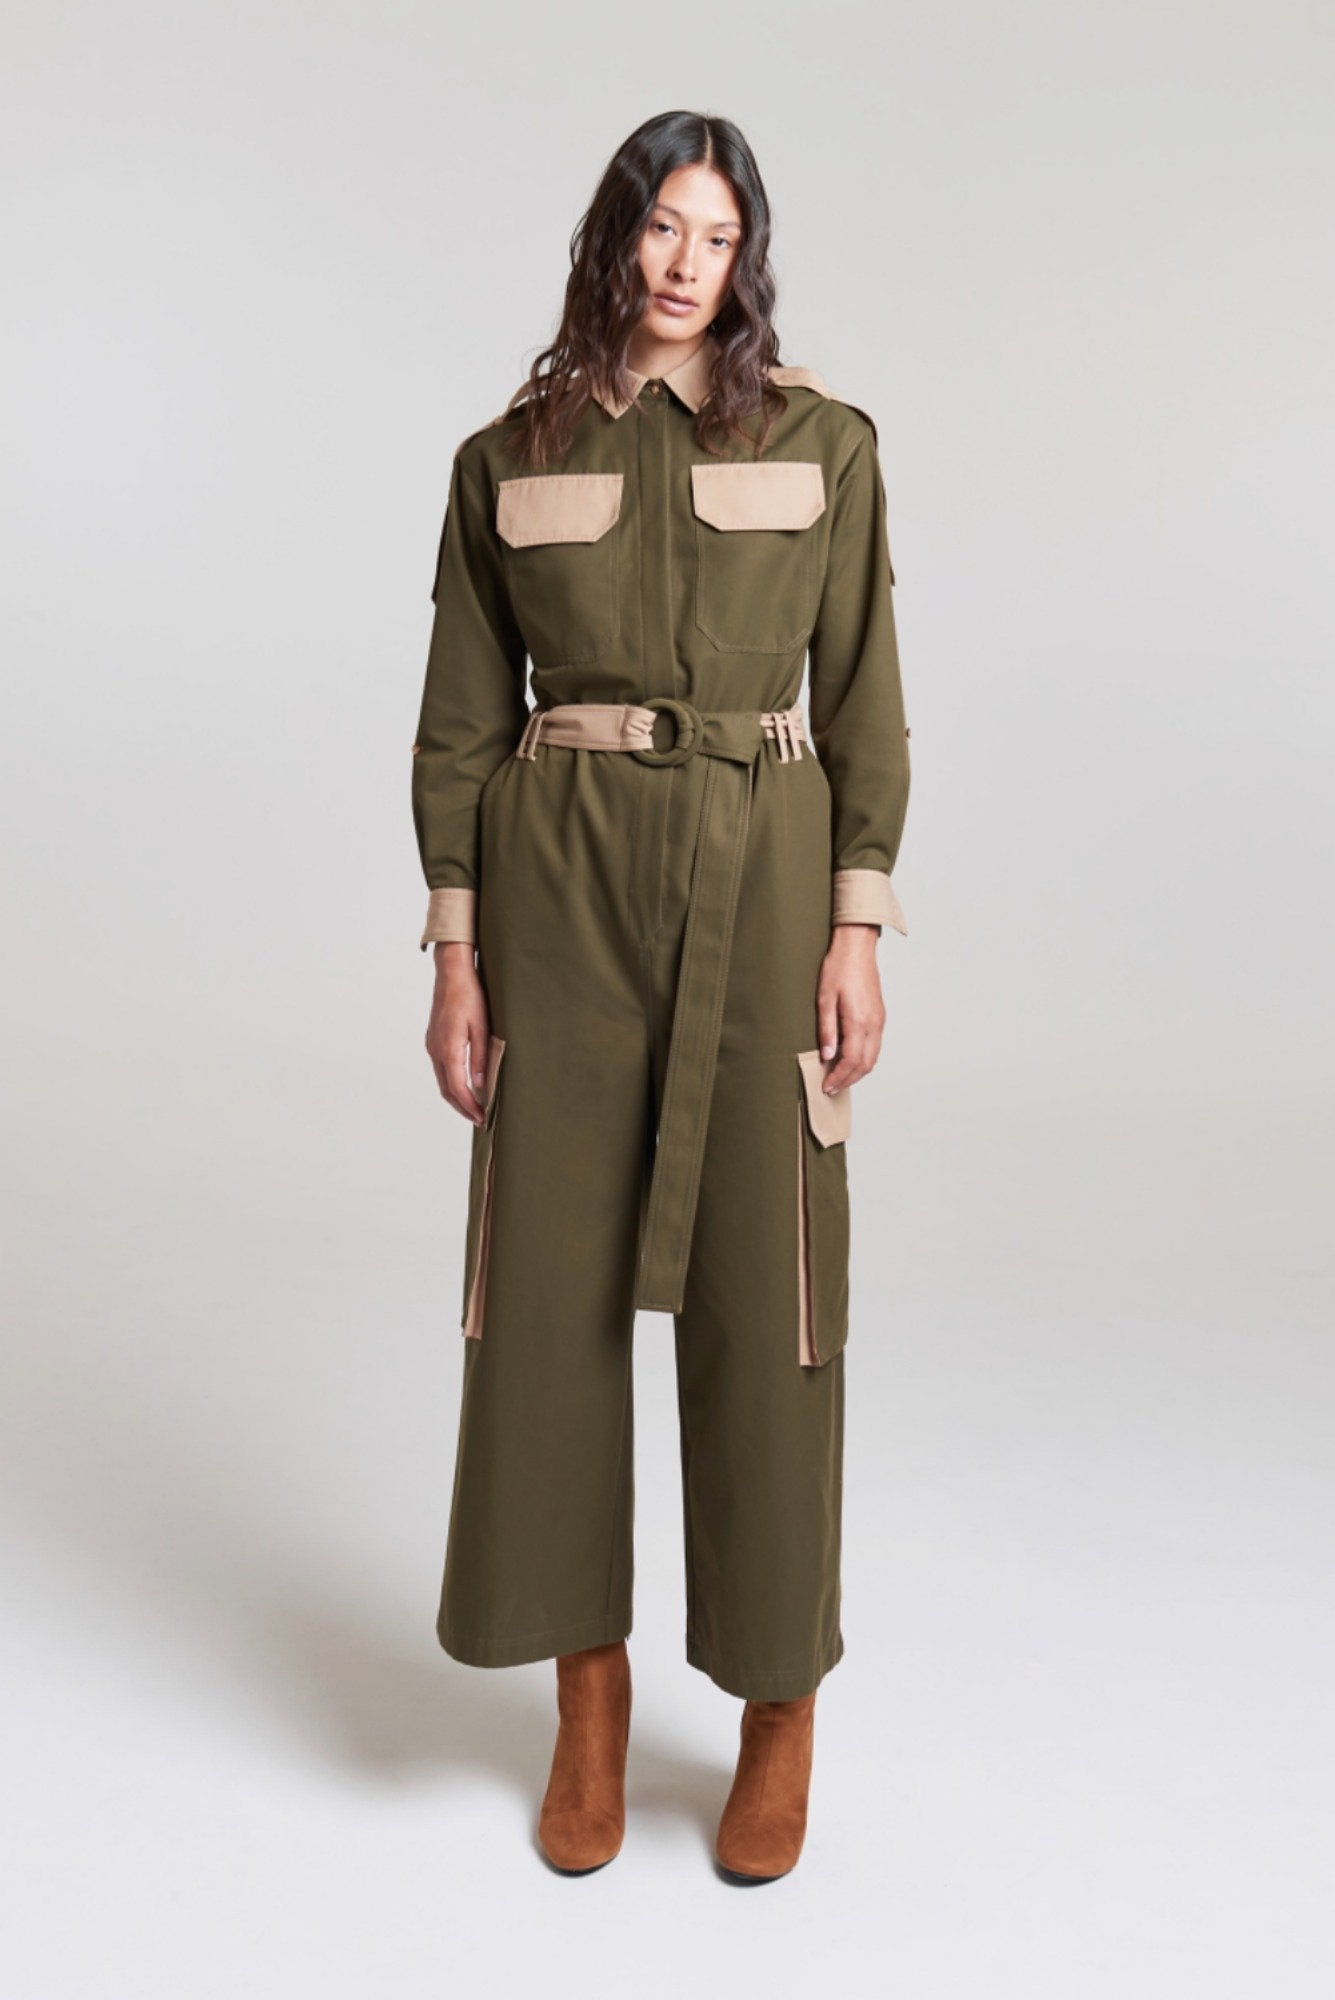 Palones Tan and Khaki Hackney Colour Boilersuit